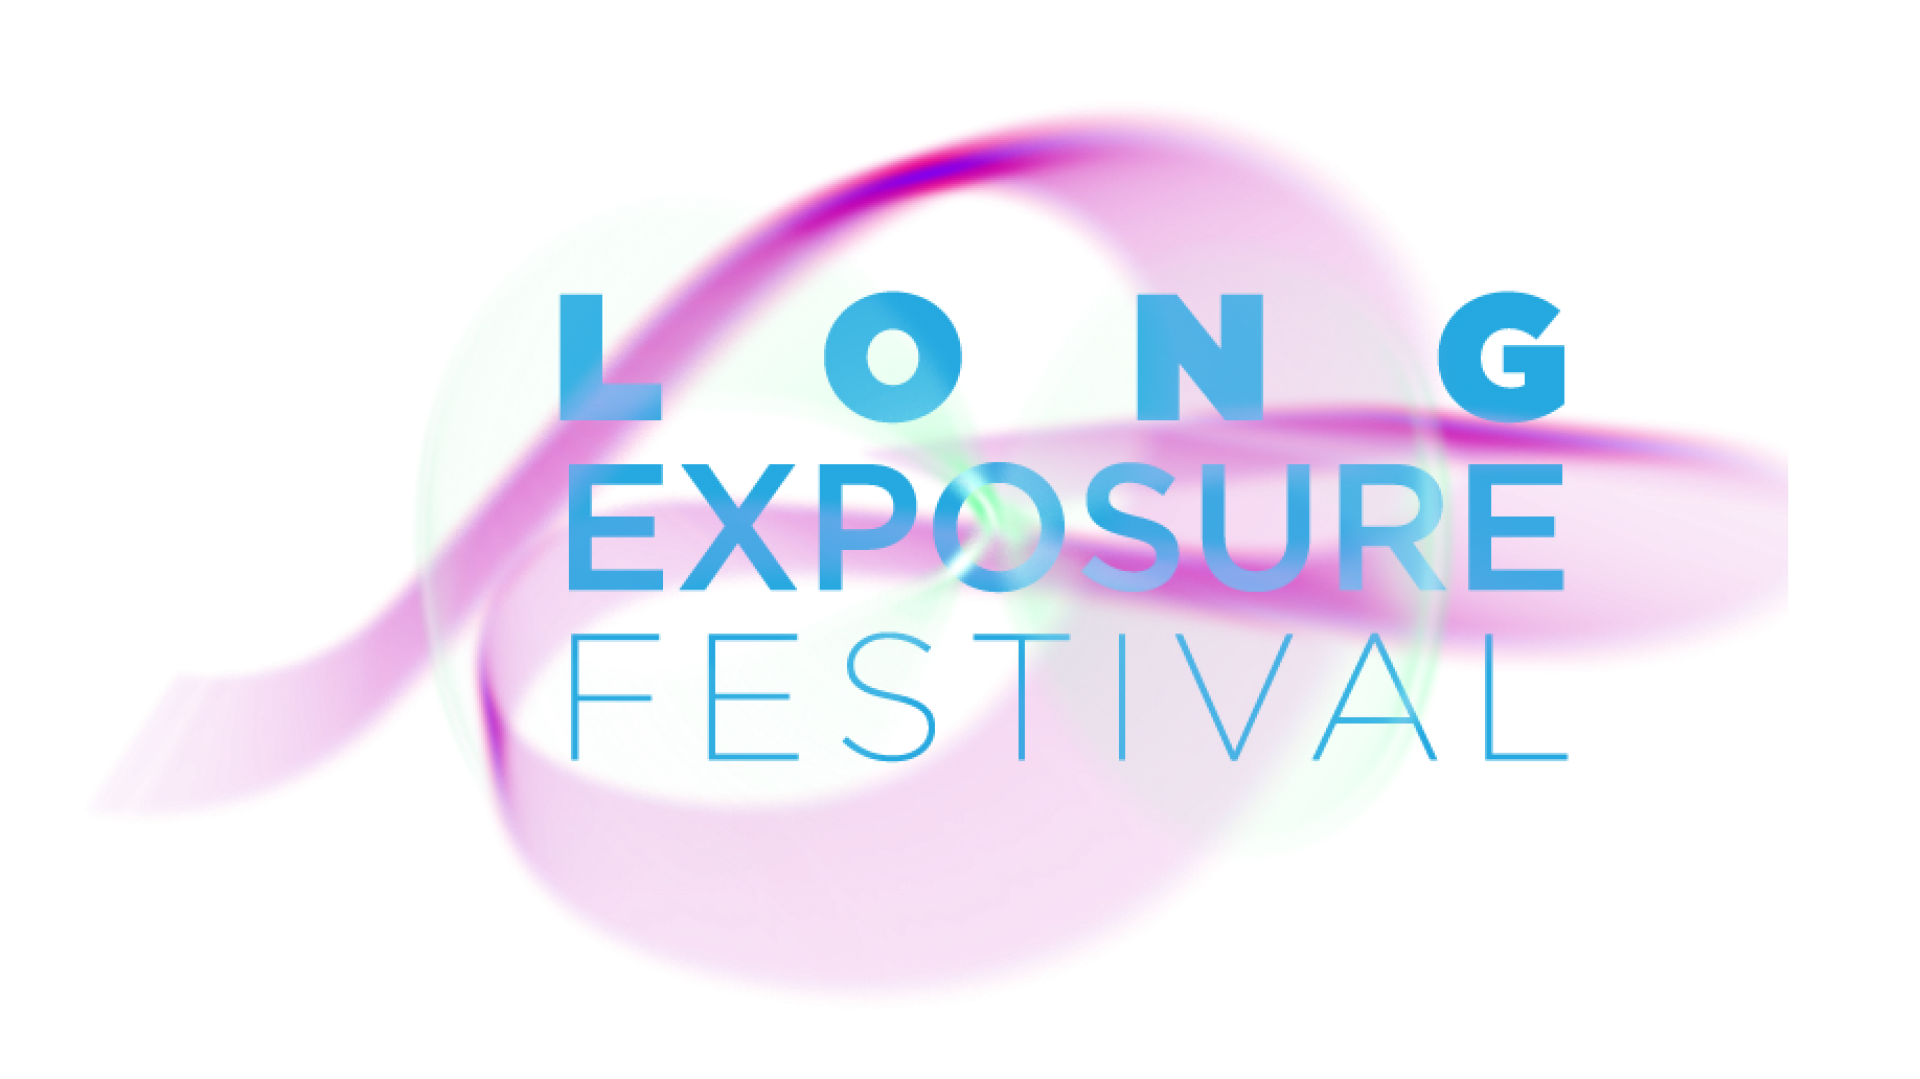 Long Exposure Festival